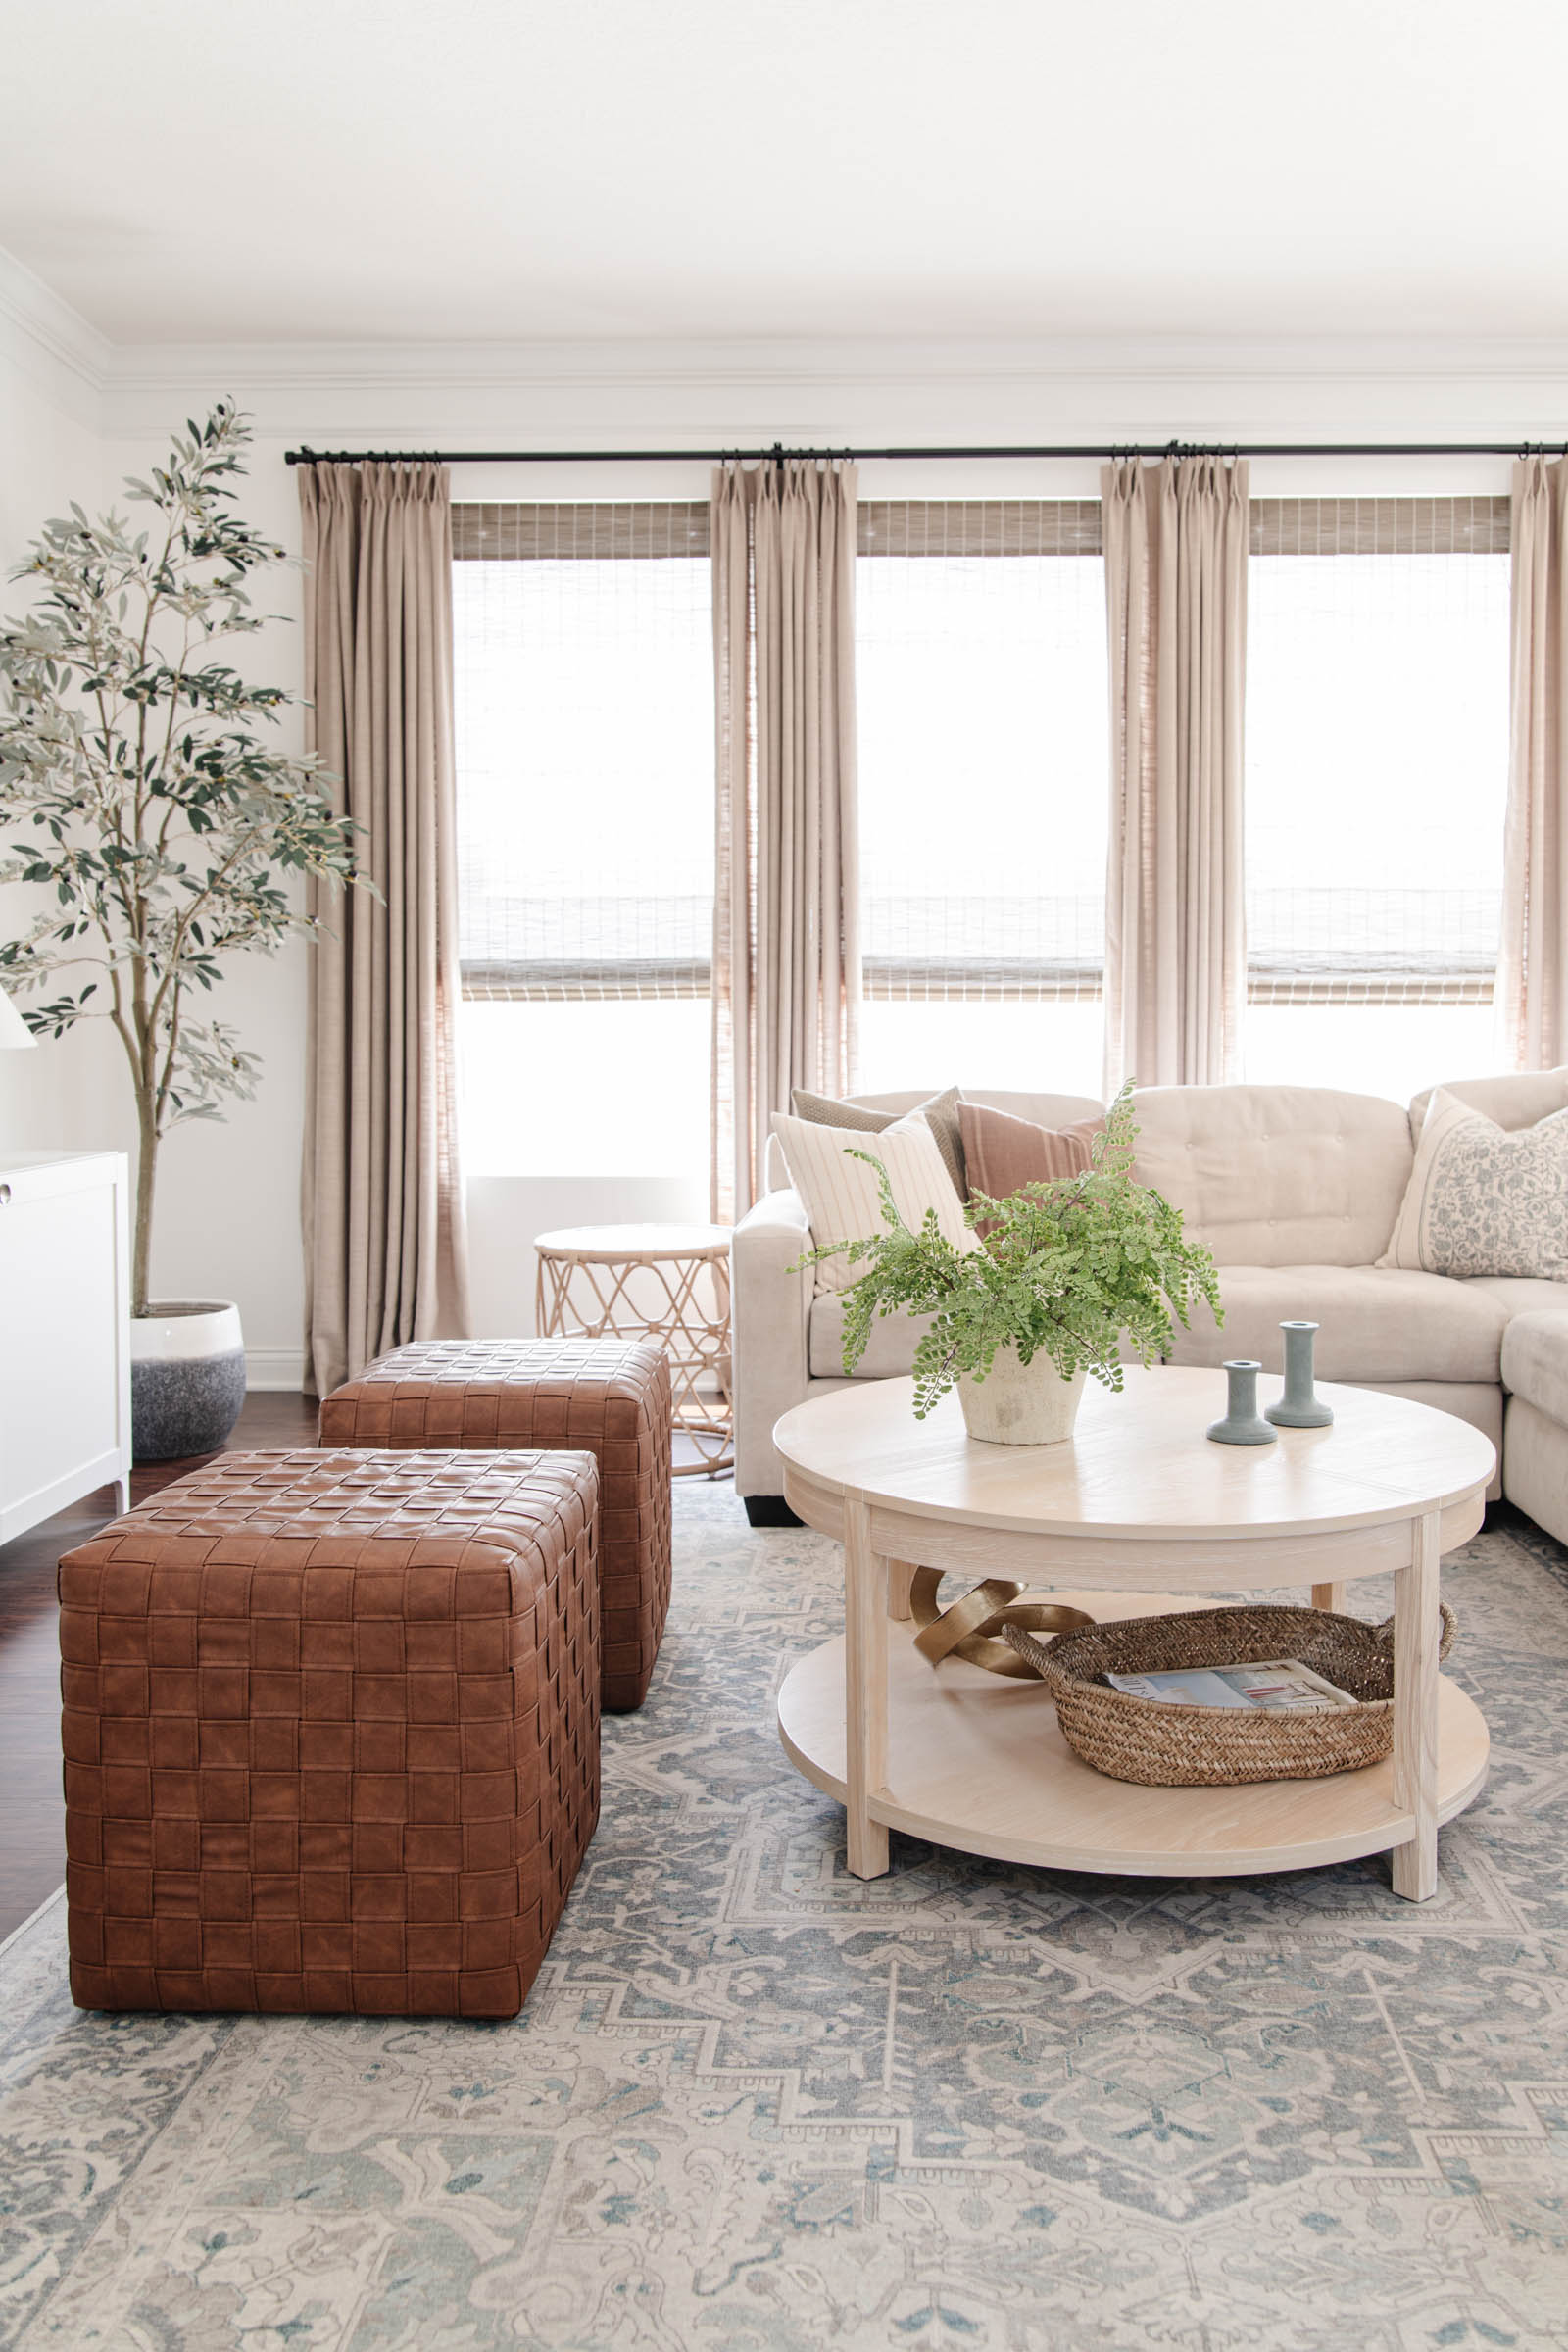 Modern traditional living room with blue vintage style rugs, faux leather woven cubes, grey beige twopages drapes